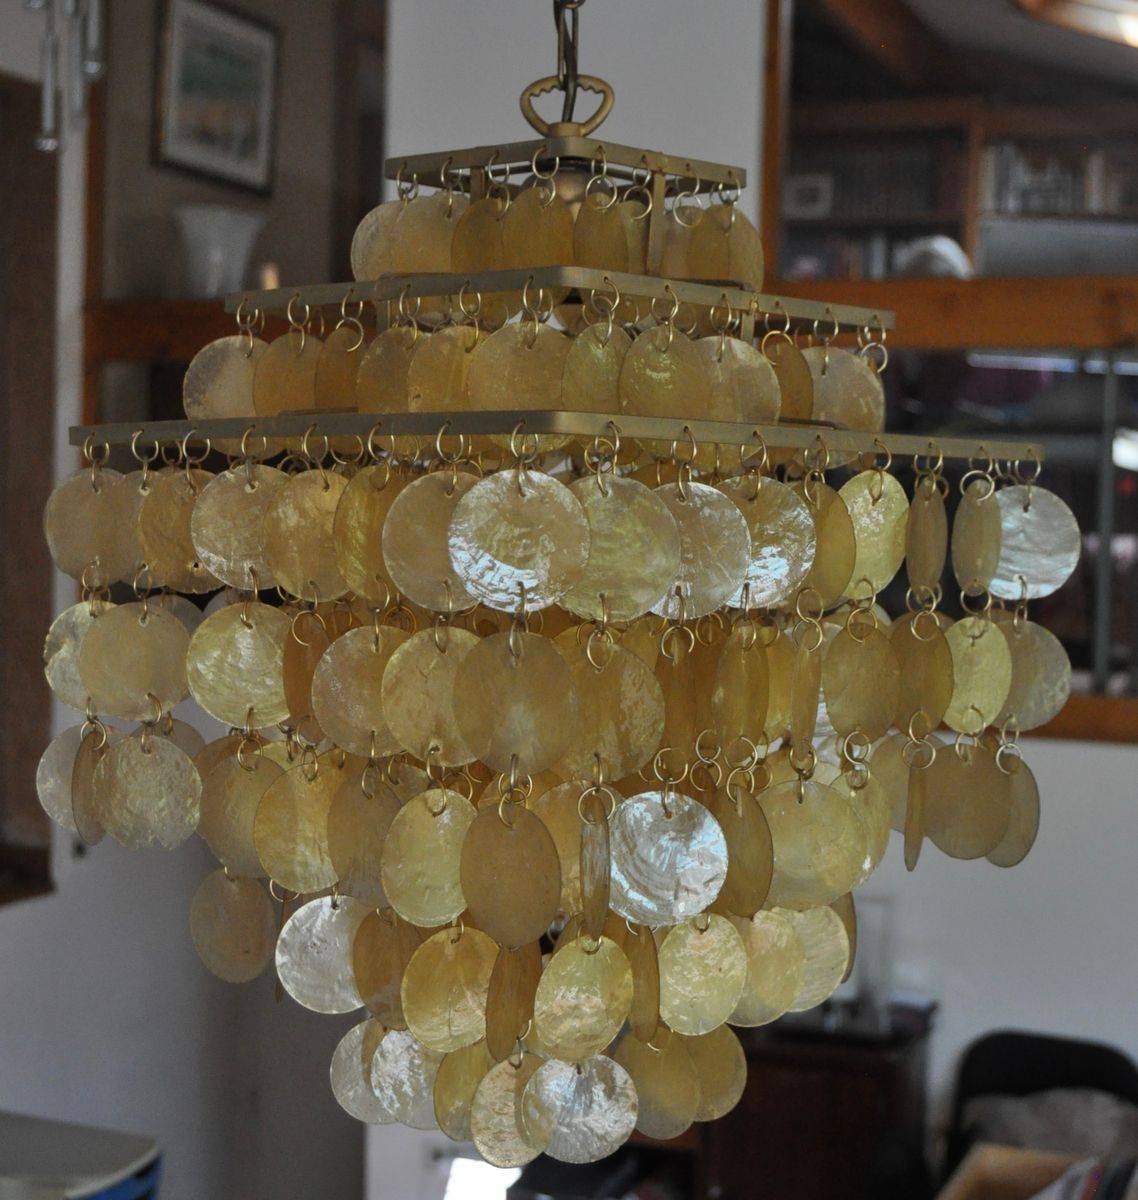 Mid Century Mother Of Pearl Chandelier By Arturo Pani For Verner Panton,  1960s